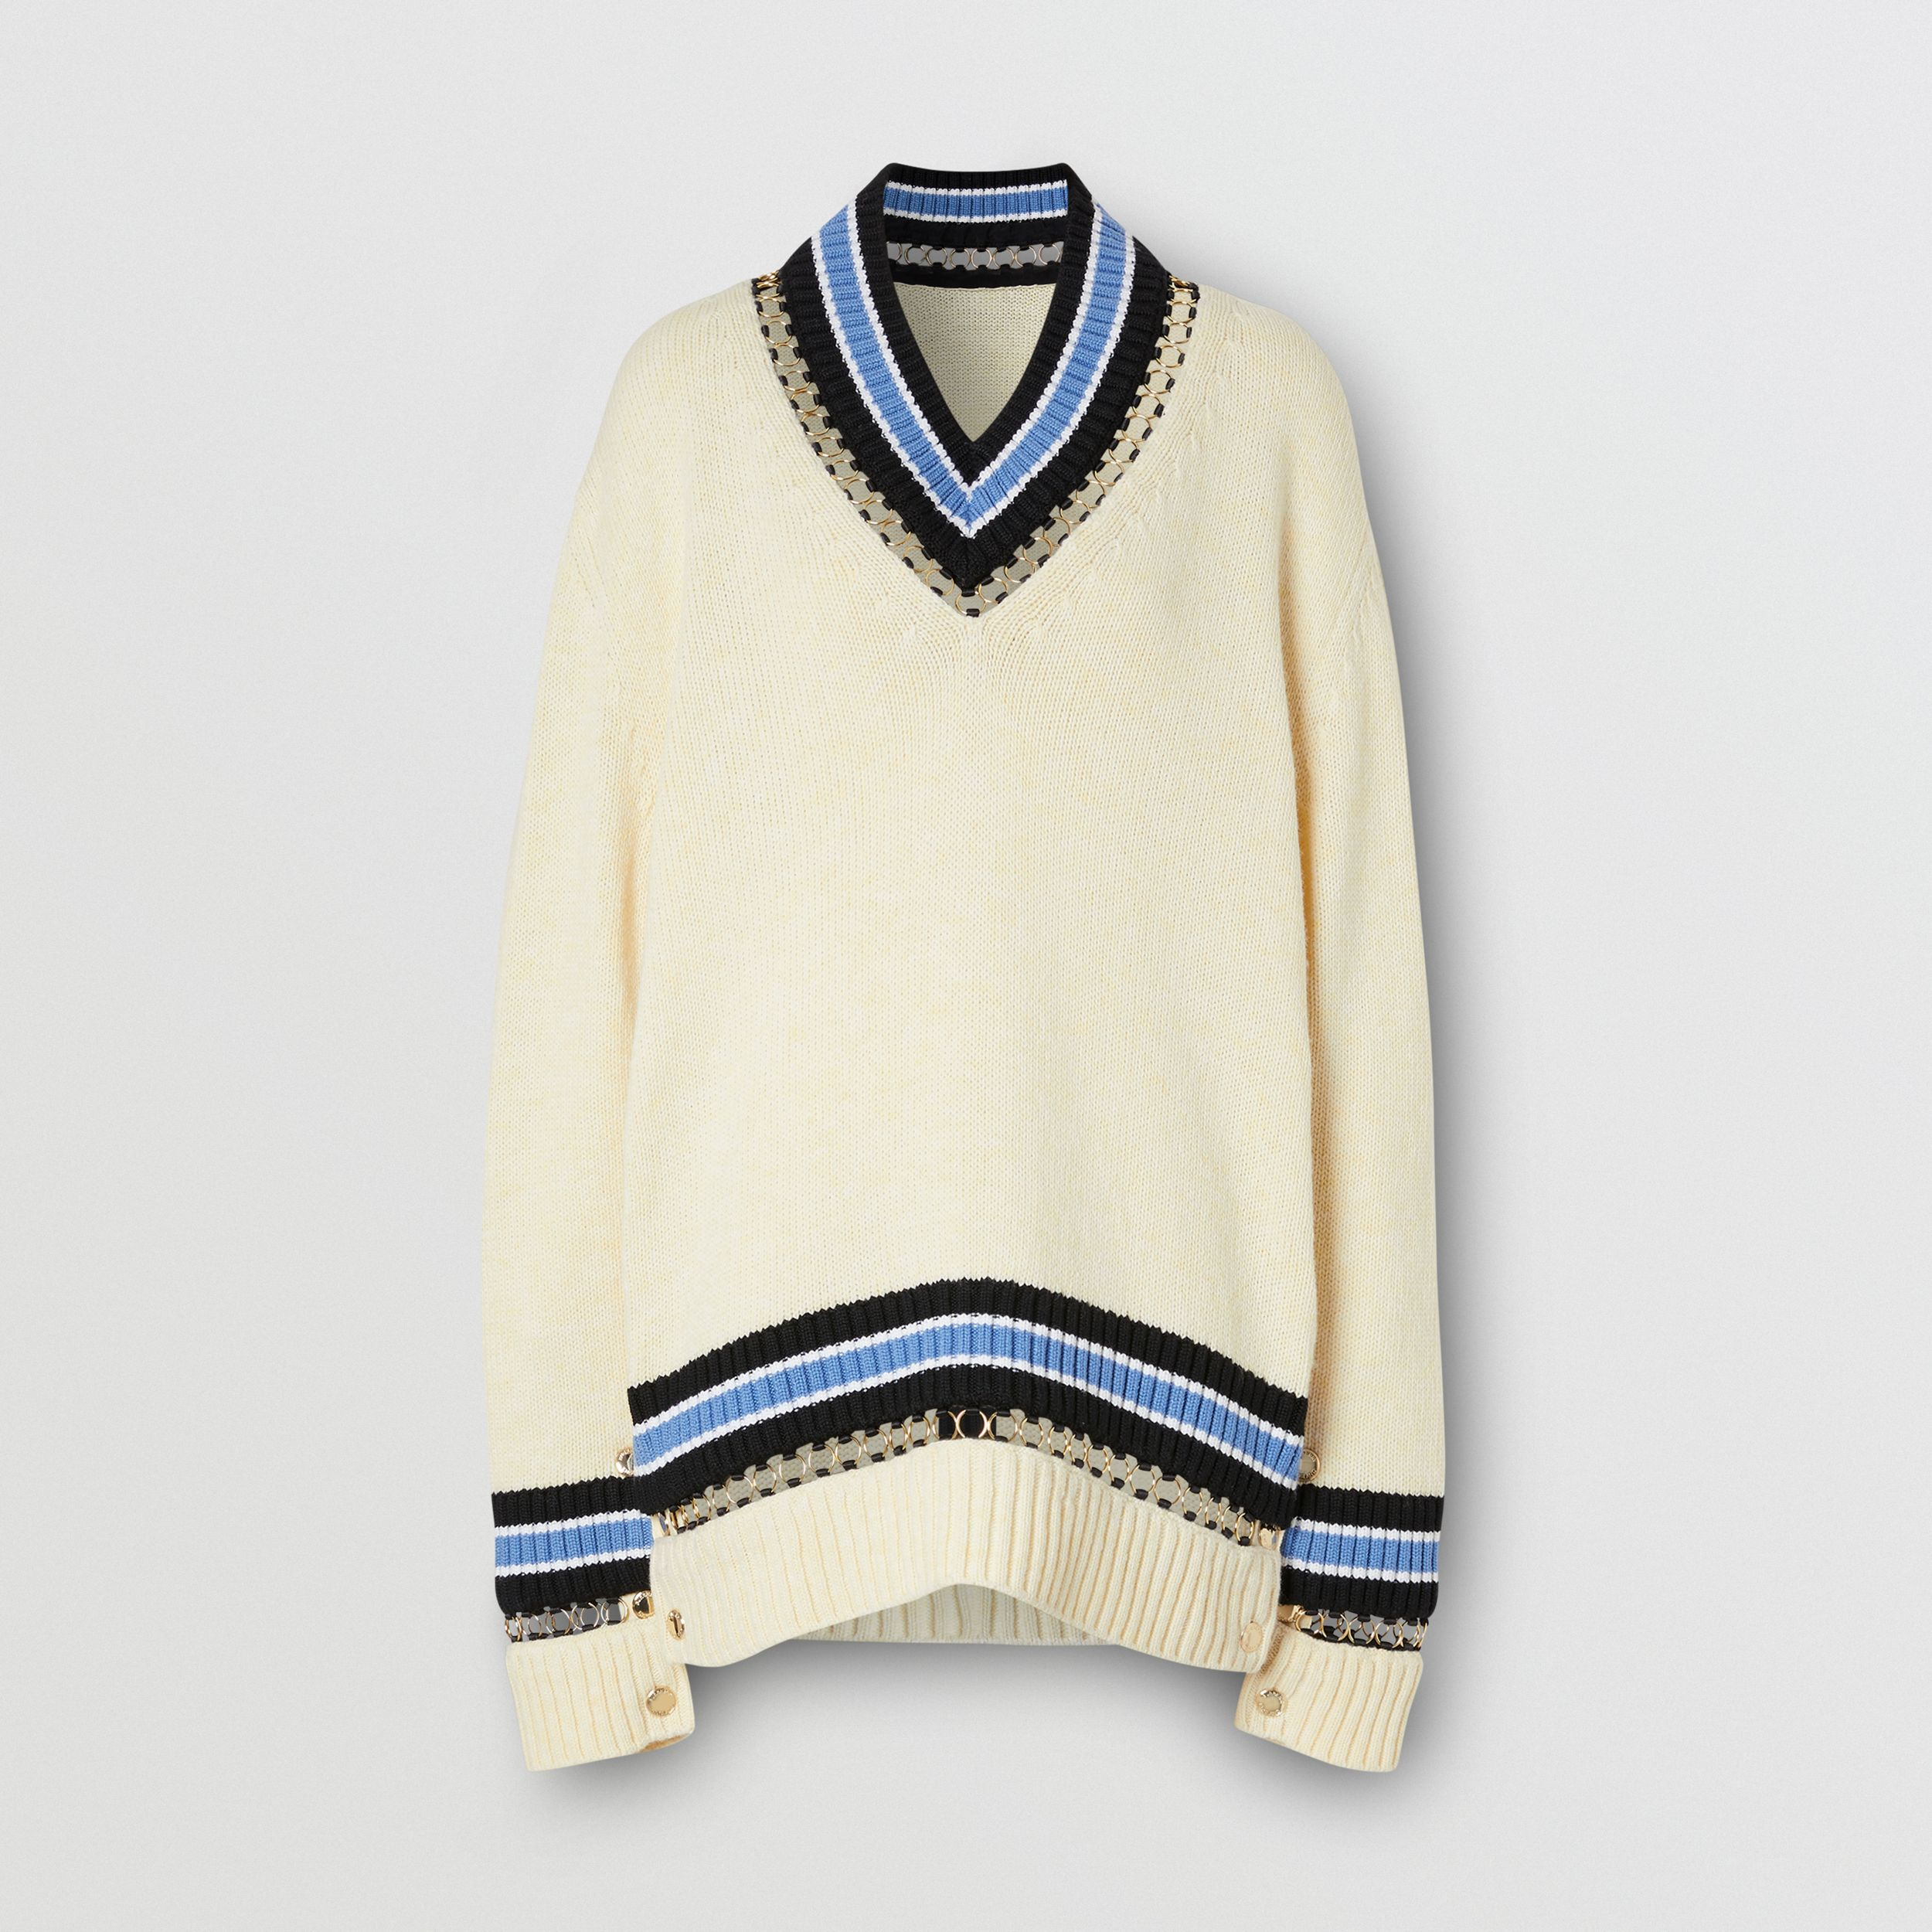 Ring-pierced Wool Oversized Cricket Sweater in White - Women | Burberry - 4